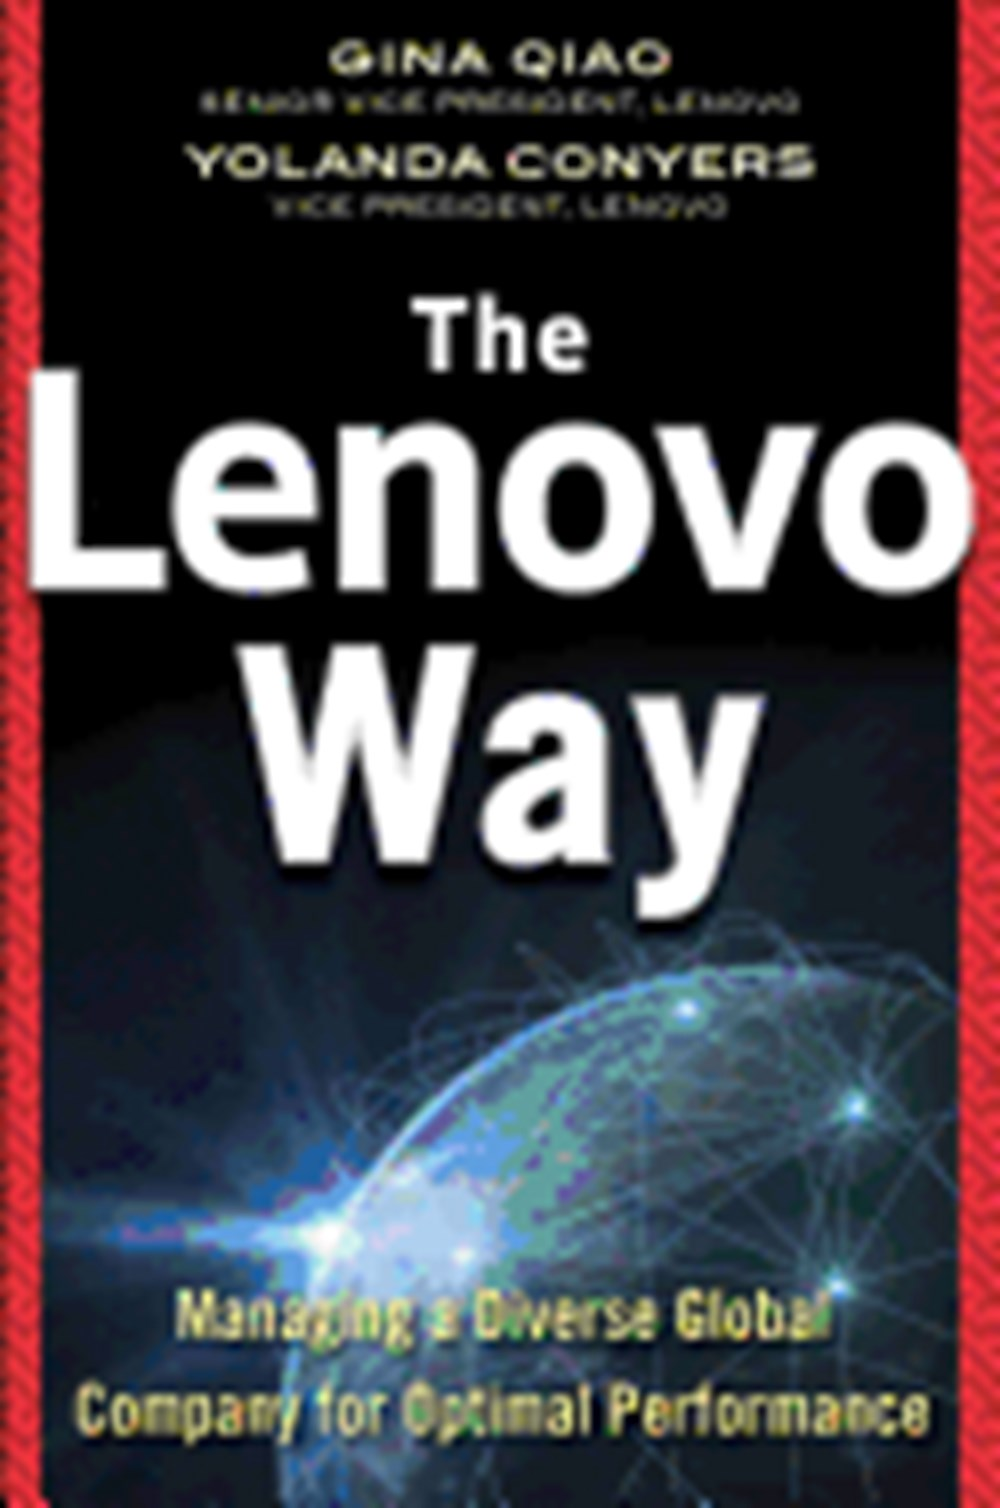 Lenovo Way Managing a Diverse Global Company for Optimal Performance